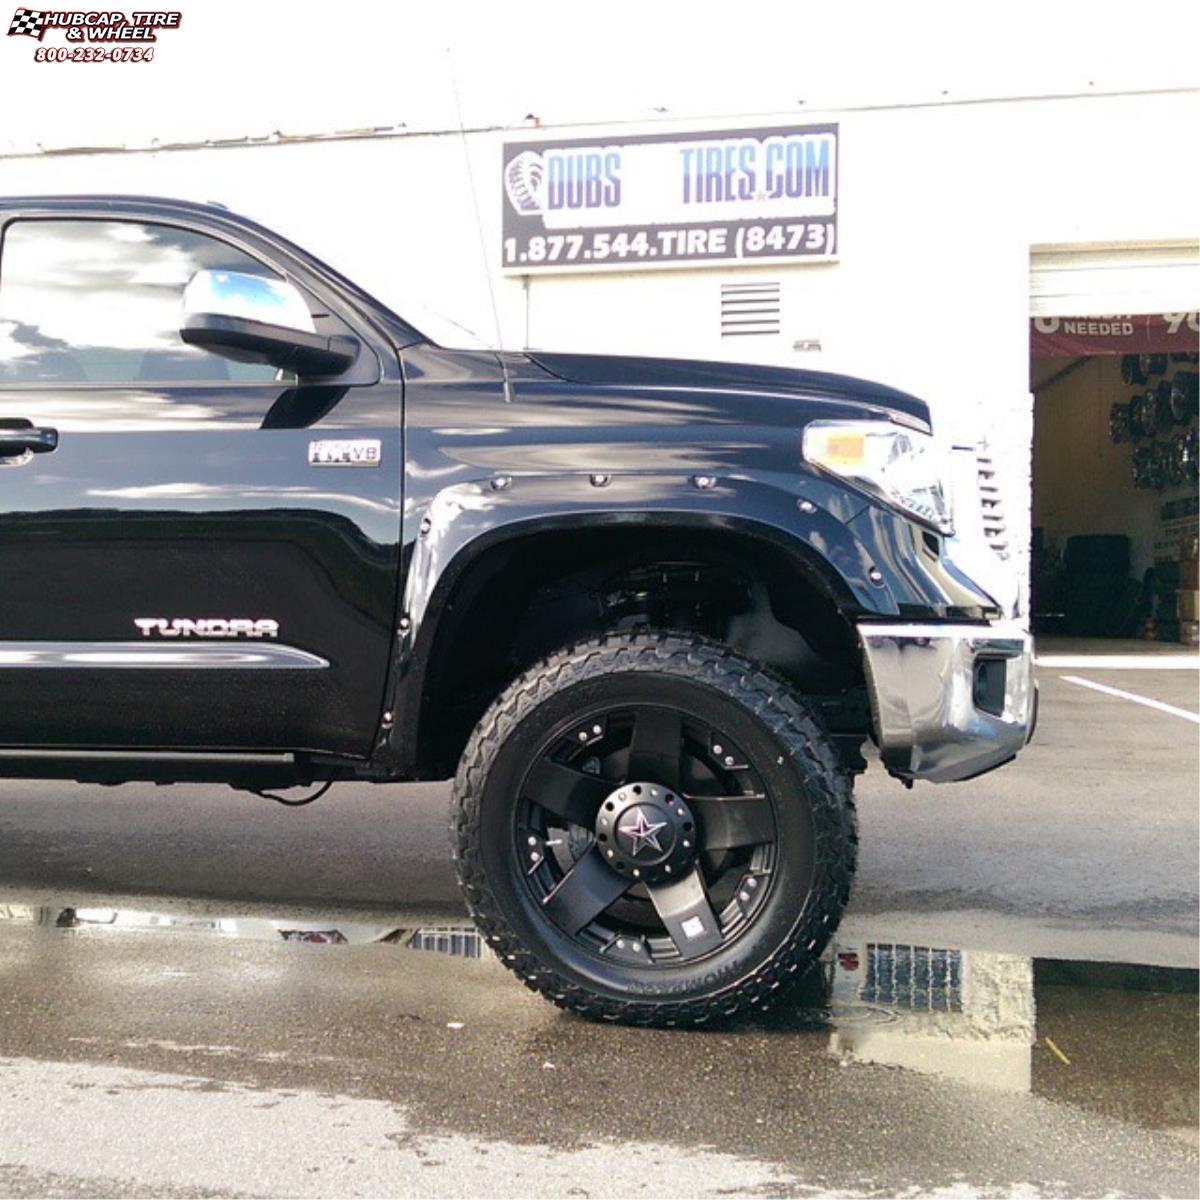 vehicle gallery/2016 toyota tundra xd series xd775 rockstar x  Matte Black wheels and rims